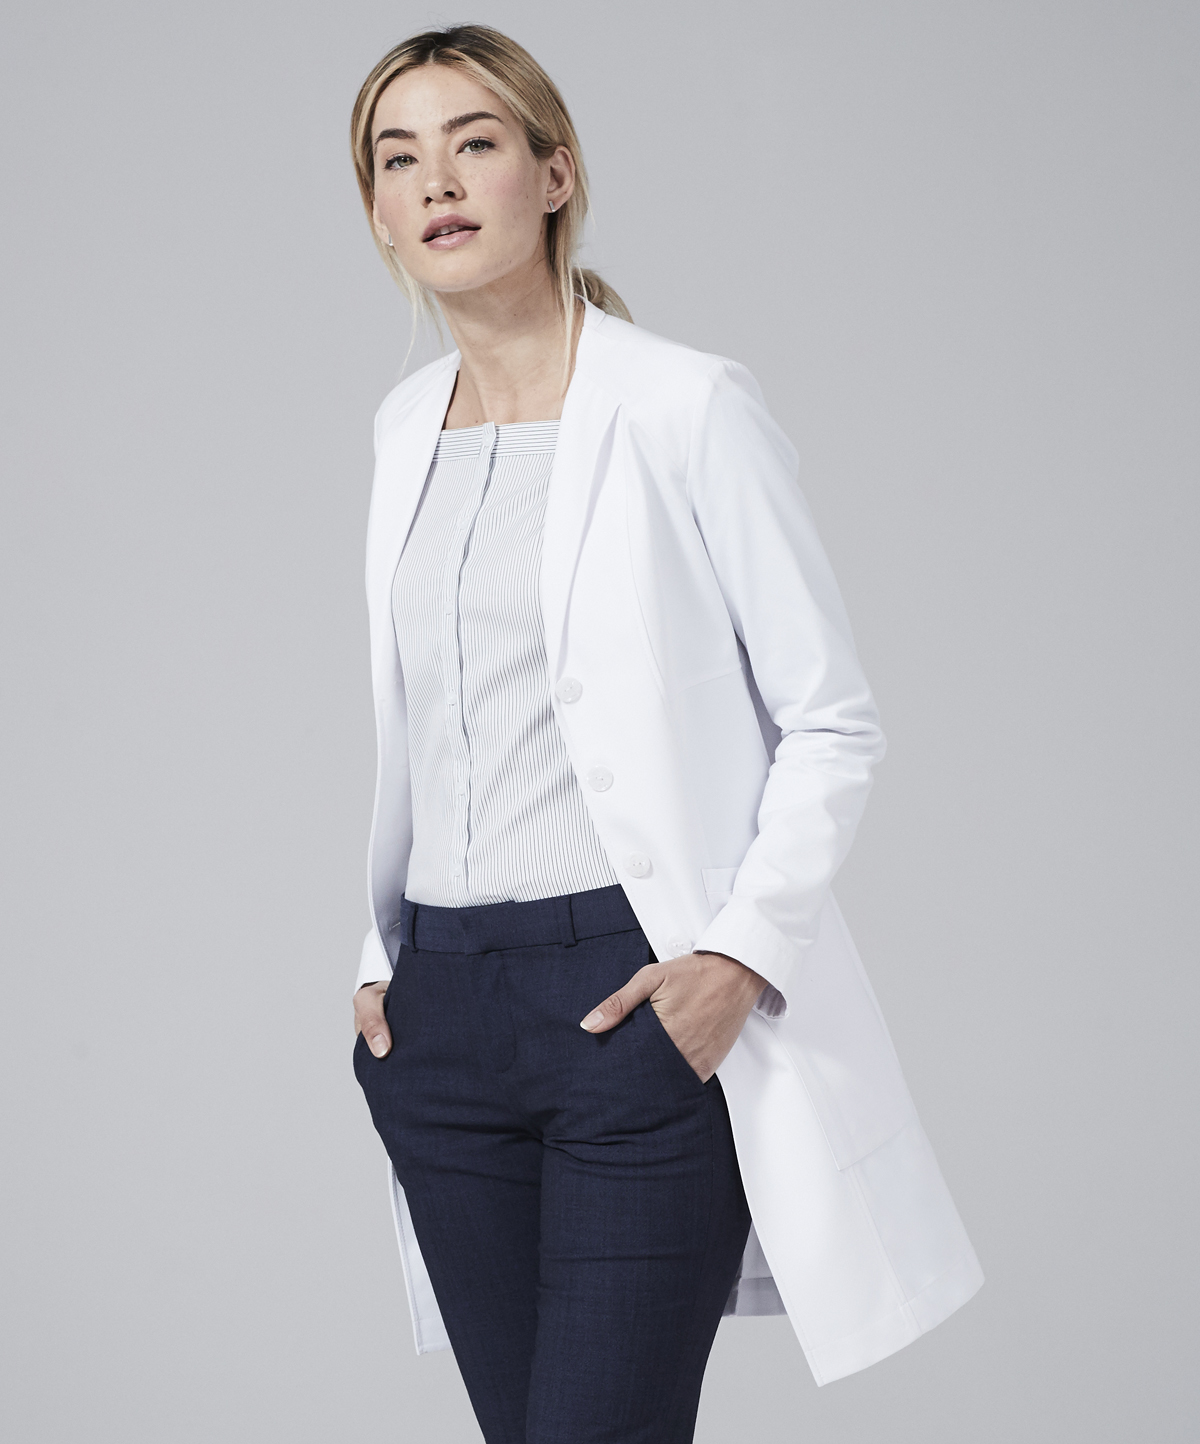 Tailored Lab Coats